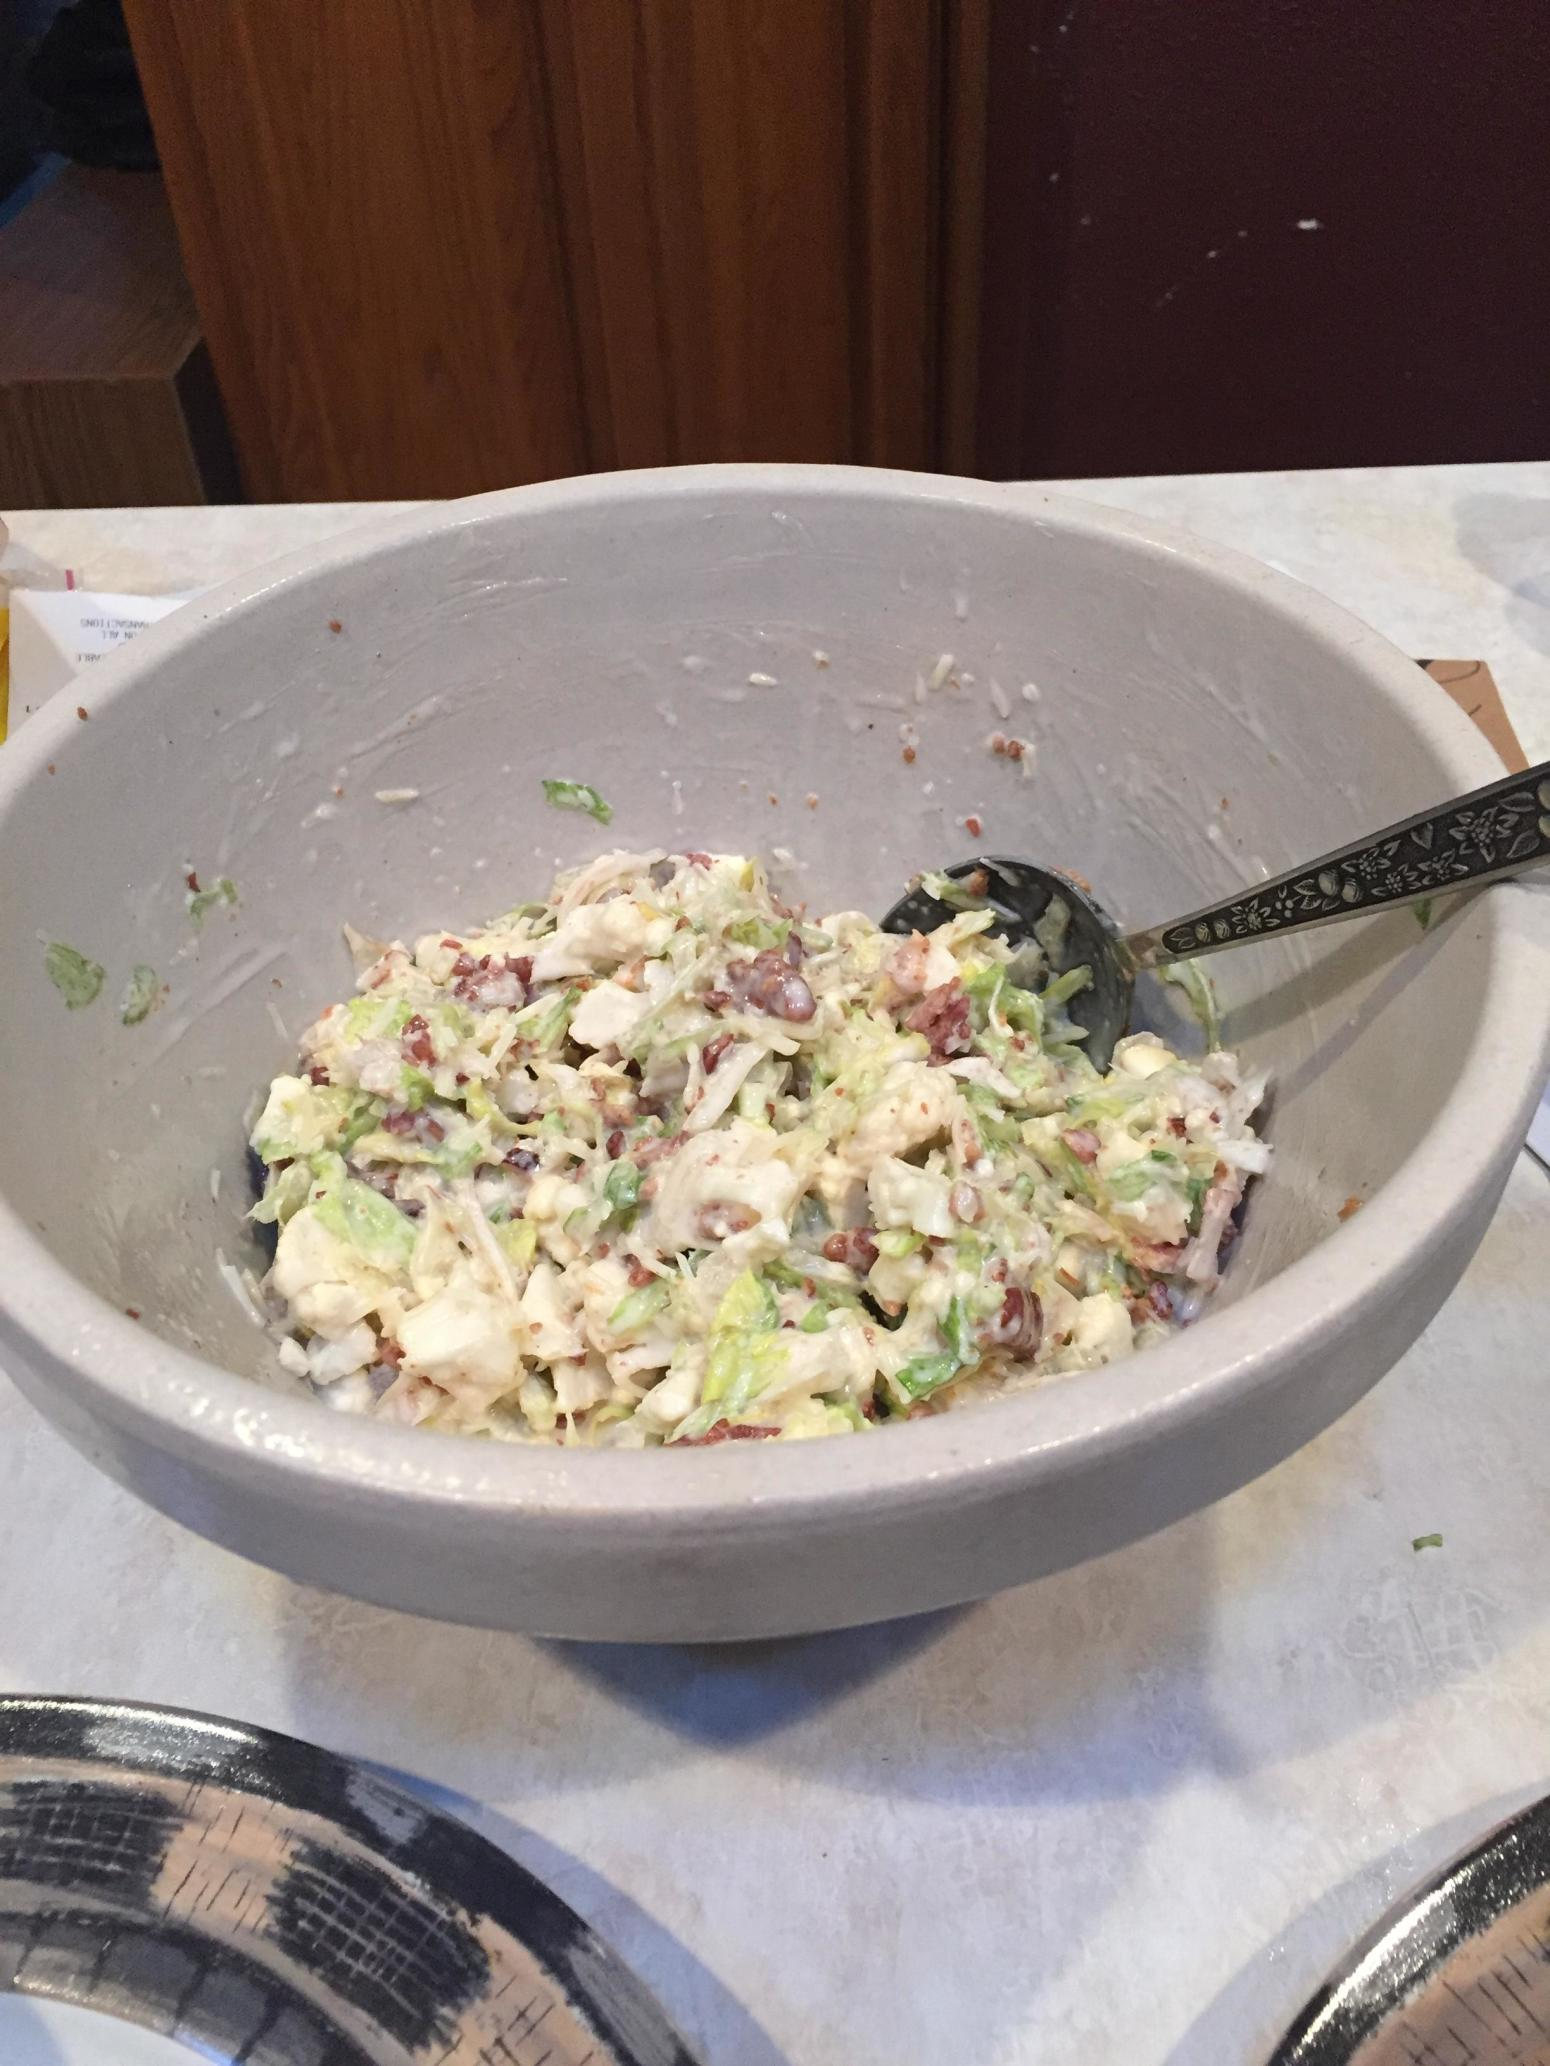 Tequilaberry's salad Recipe